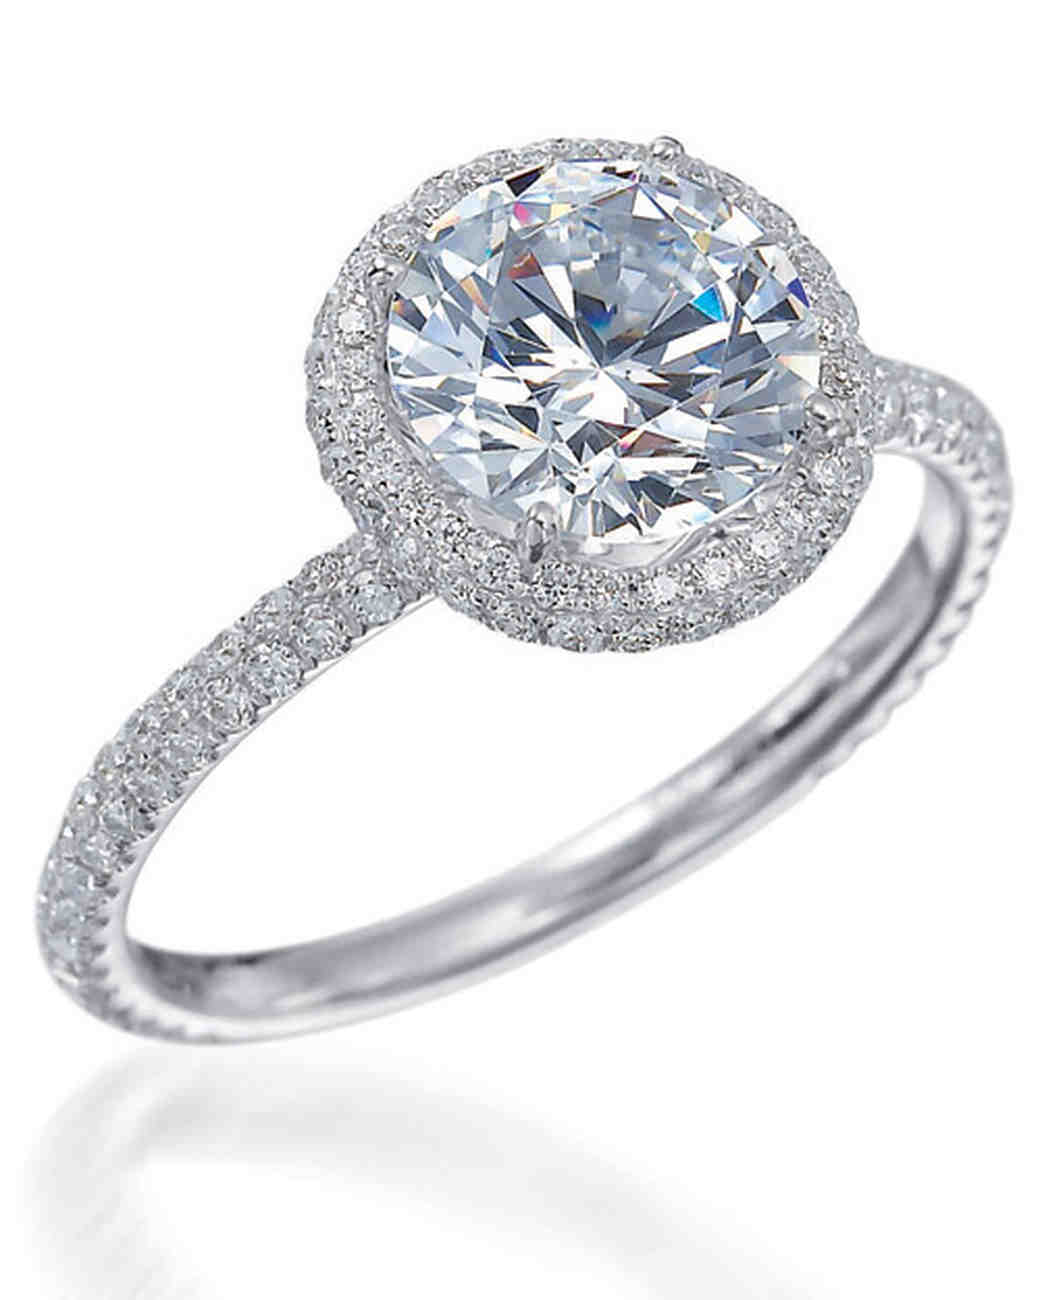 delightfully solitaire has with and enhances this engagement ring flat cut it bwzzidh its which of makes rings classic bevel been set beauty style a diamond